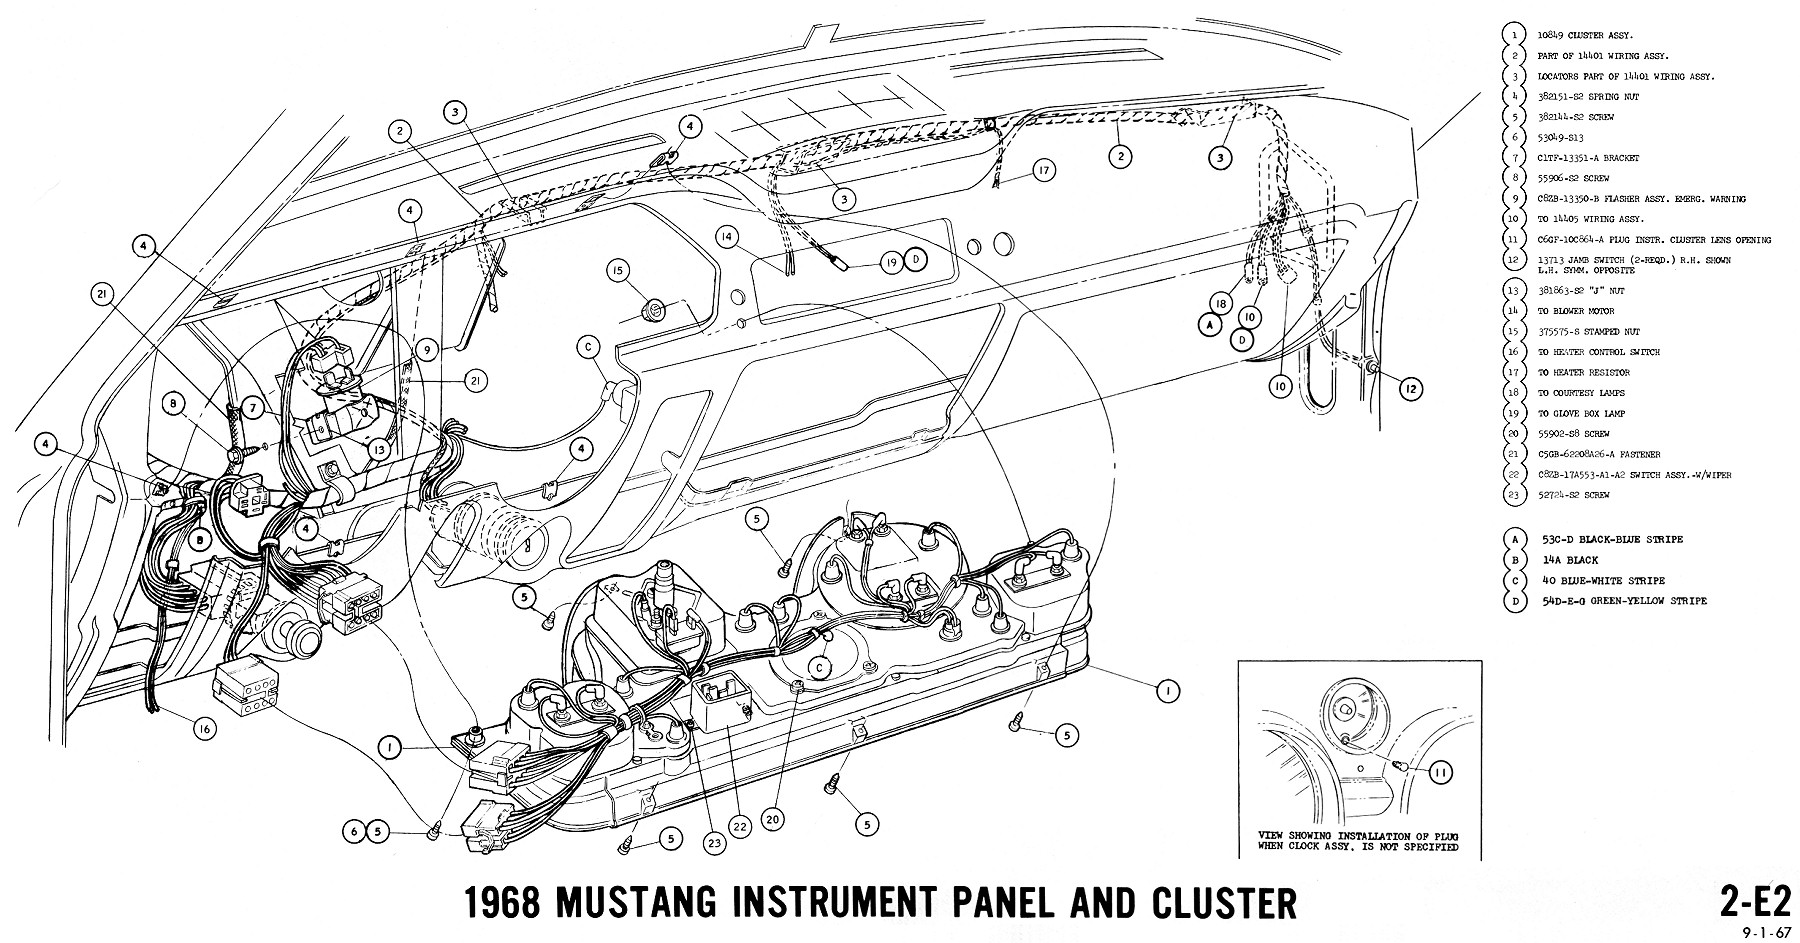 1968 mustang wiring diagram instruments 2 1968 mustang wiring diagram manual 68 mustang ignition wiring 1966 mustang wiring harness kit at readyjetset.co